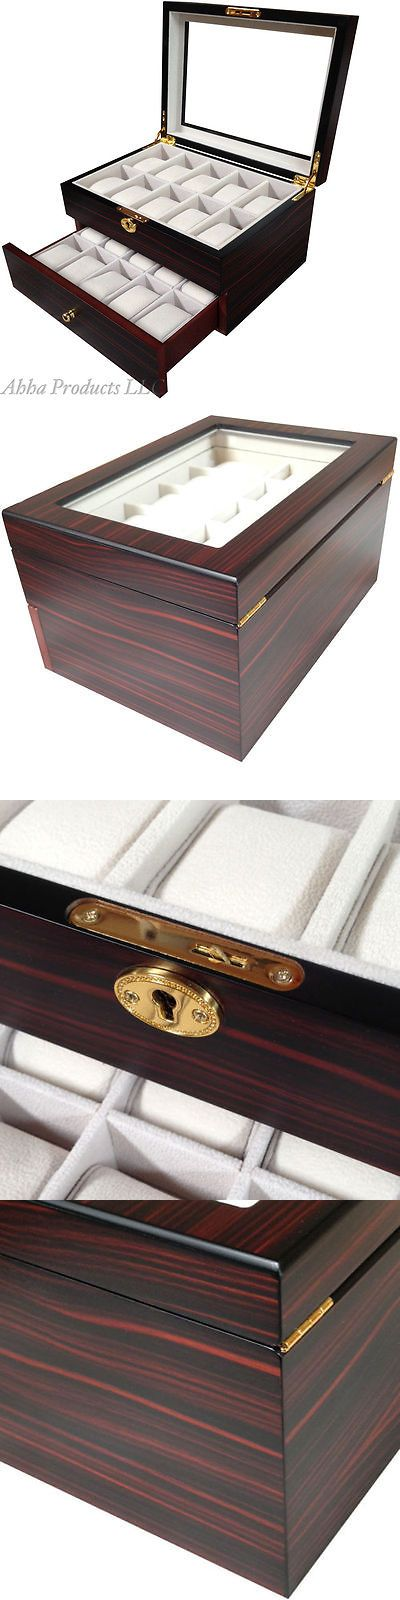 Boxes Cases and Watch Winders 173695: Ebony Walnut Wood Watch Jewelry Glass Display 20 Slots Lock Key Case Storage Box BUY IT NOW ONLY: $79.9